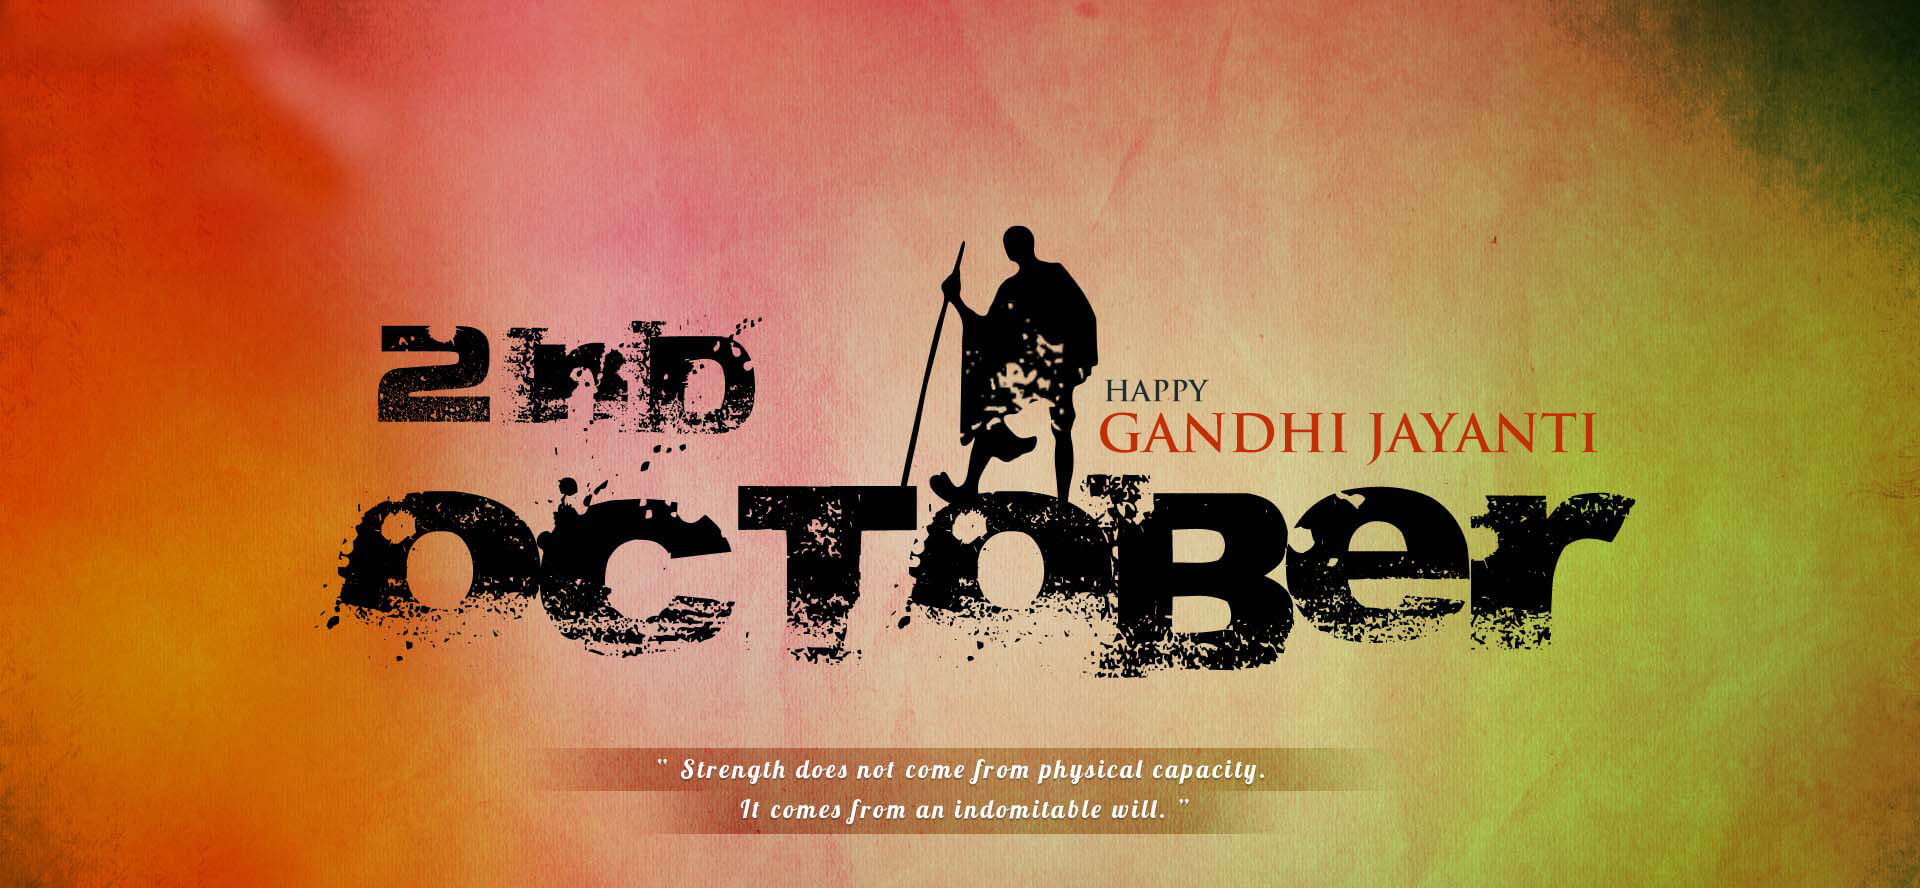 gandhi jayanti october 2 hd background wallpaper